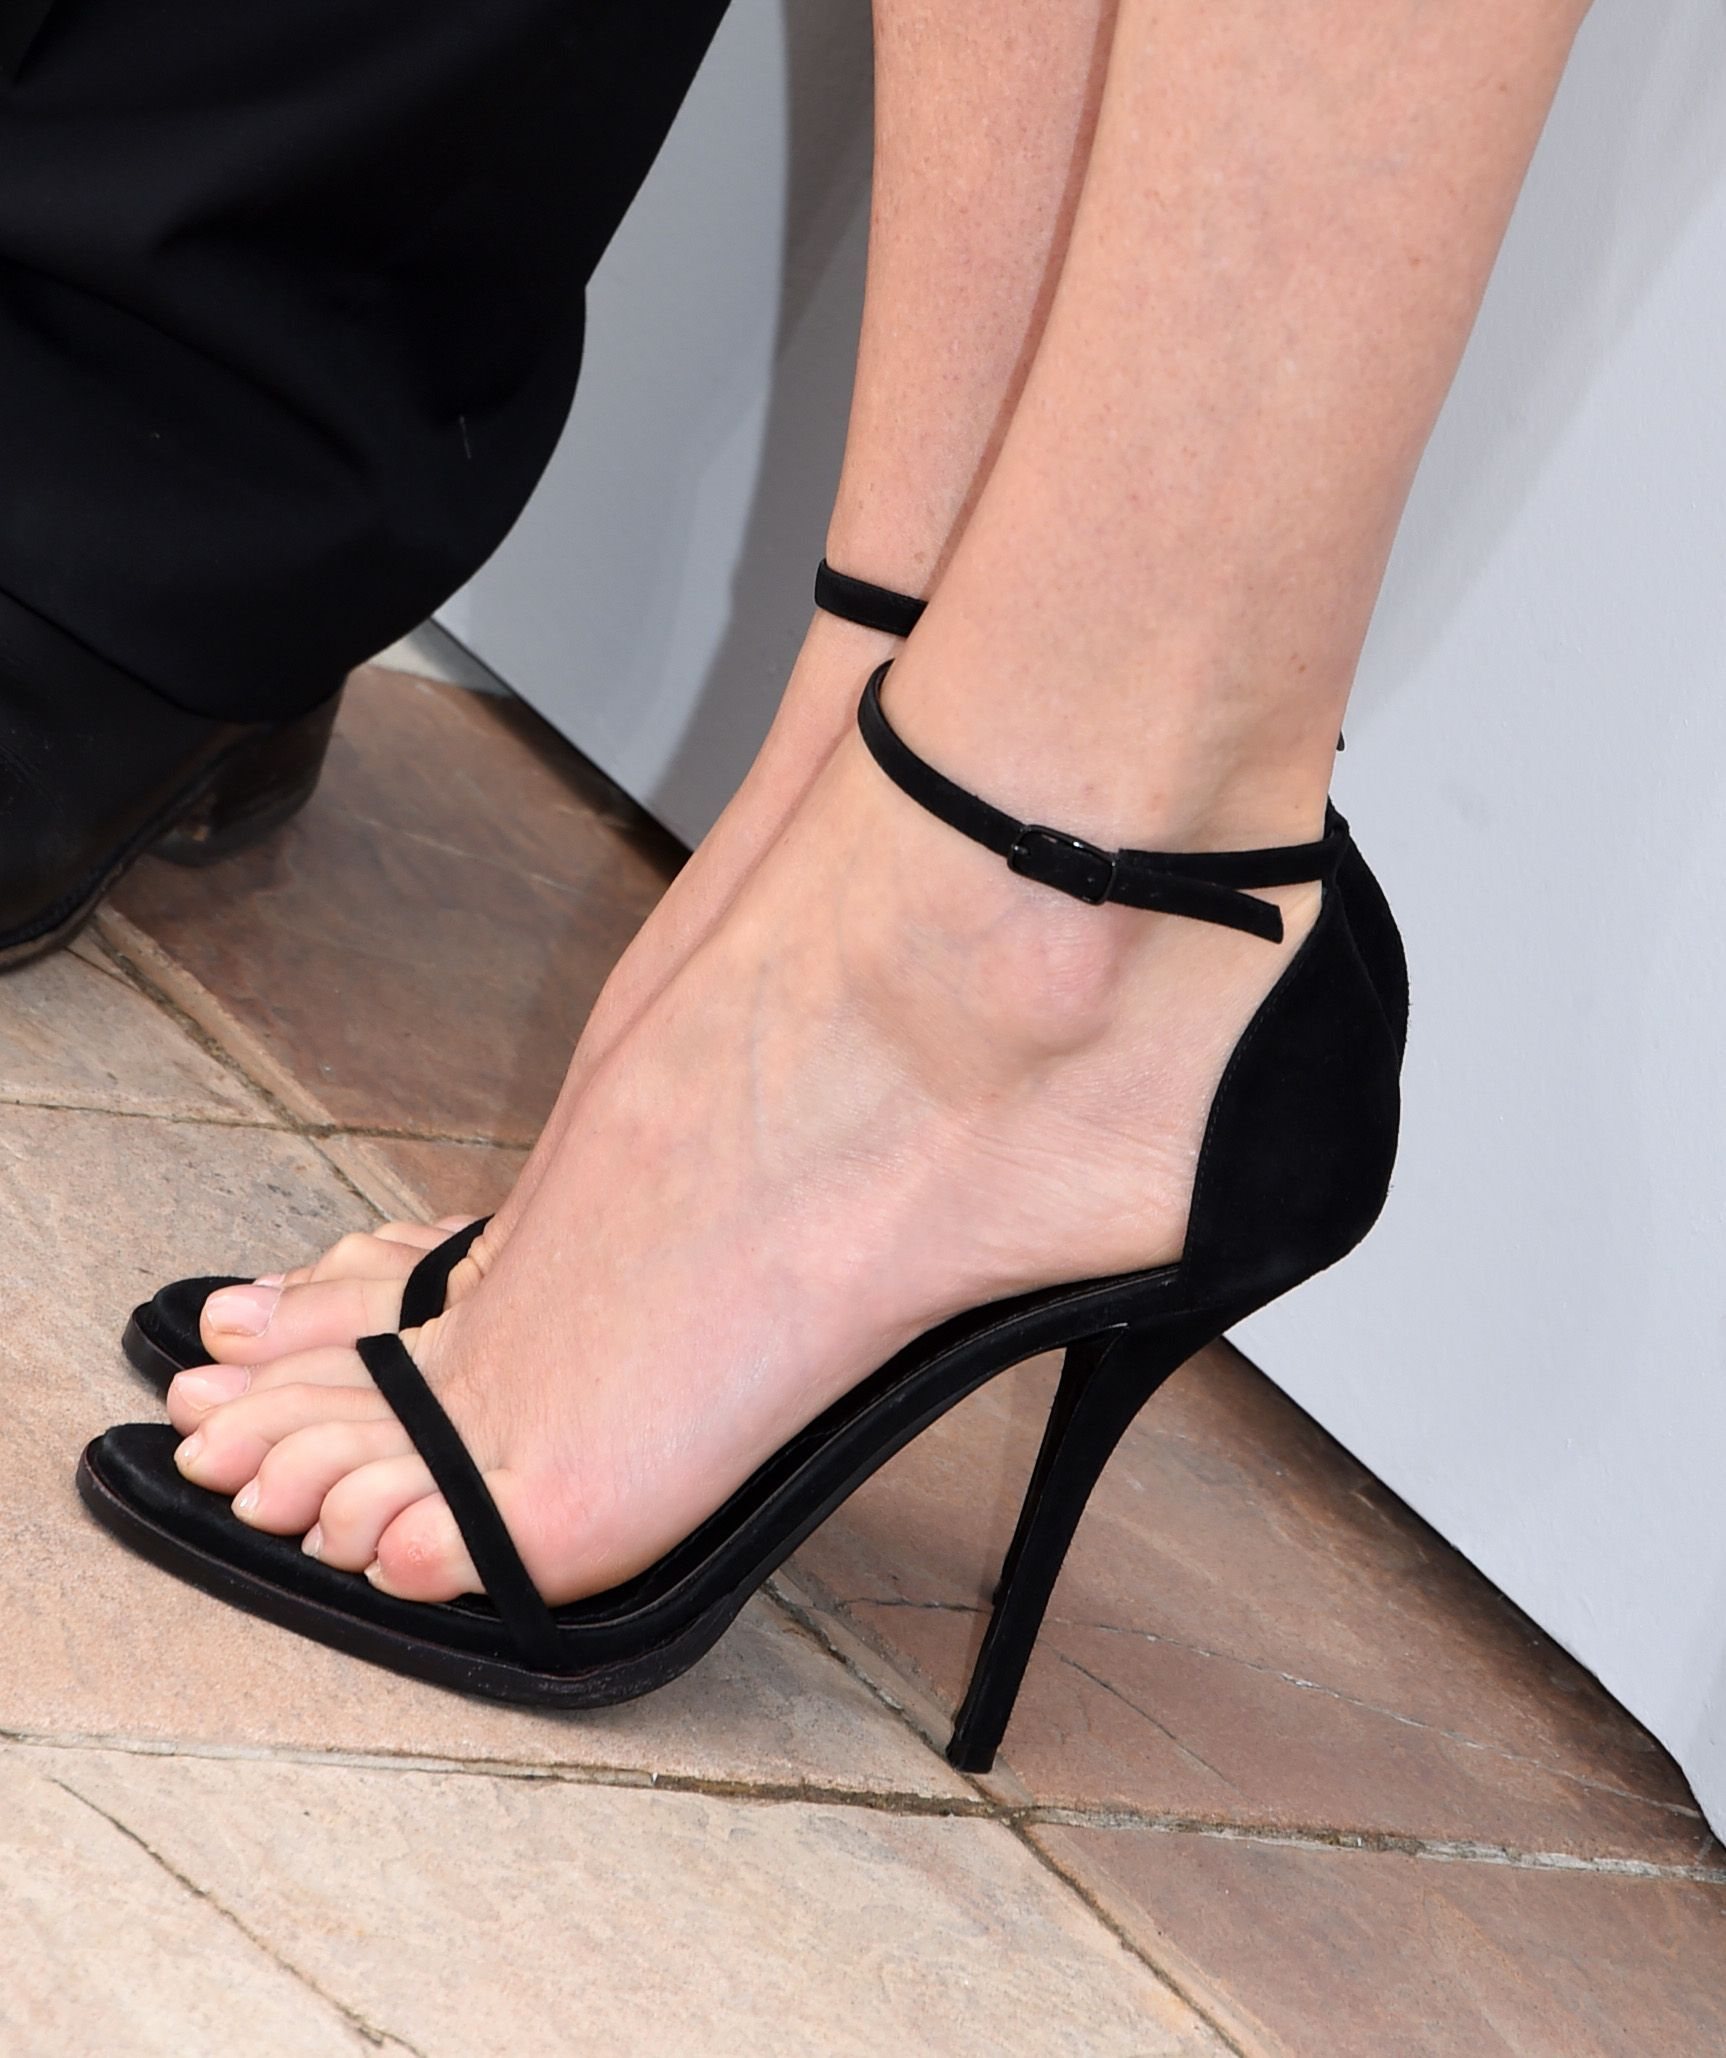 Charlize Theron S Feet